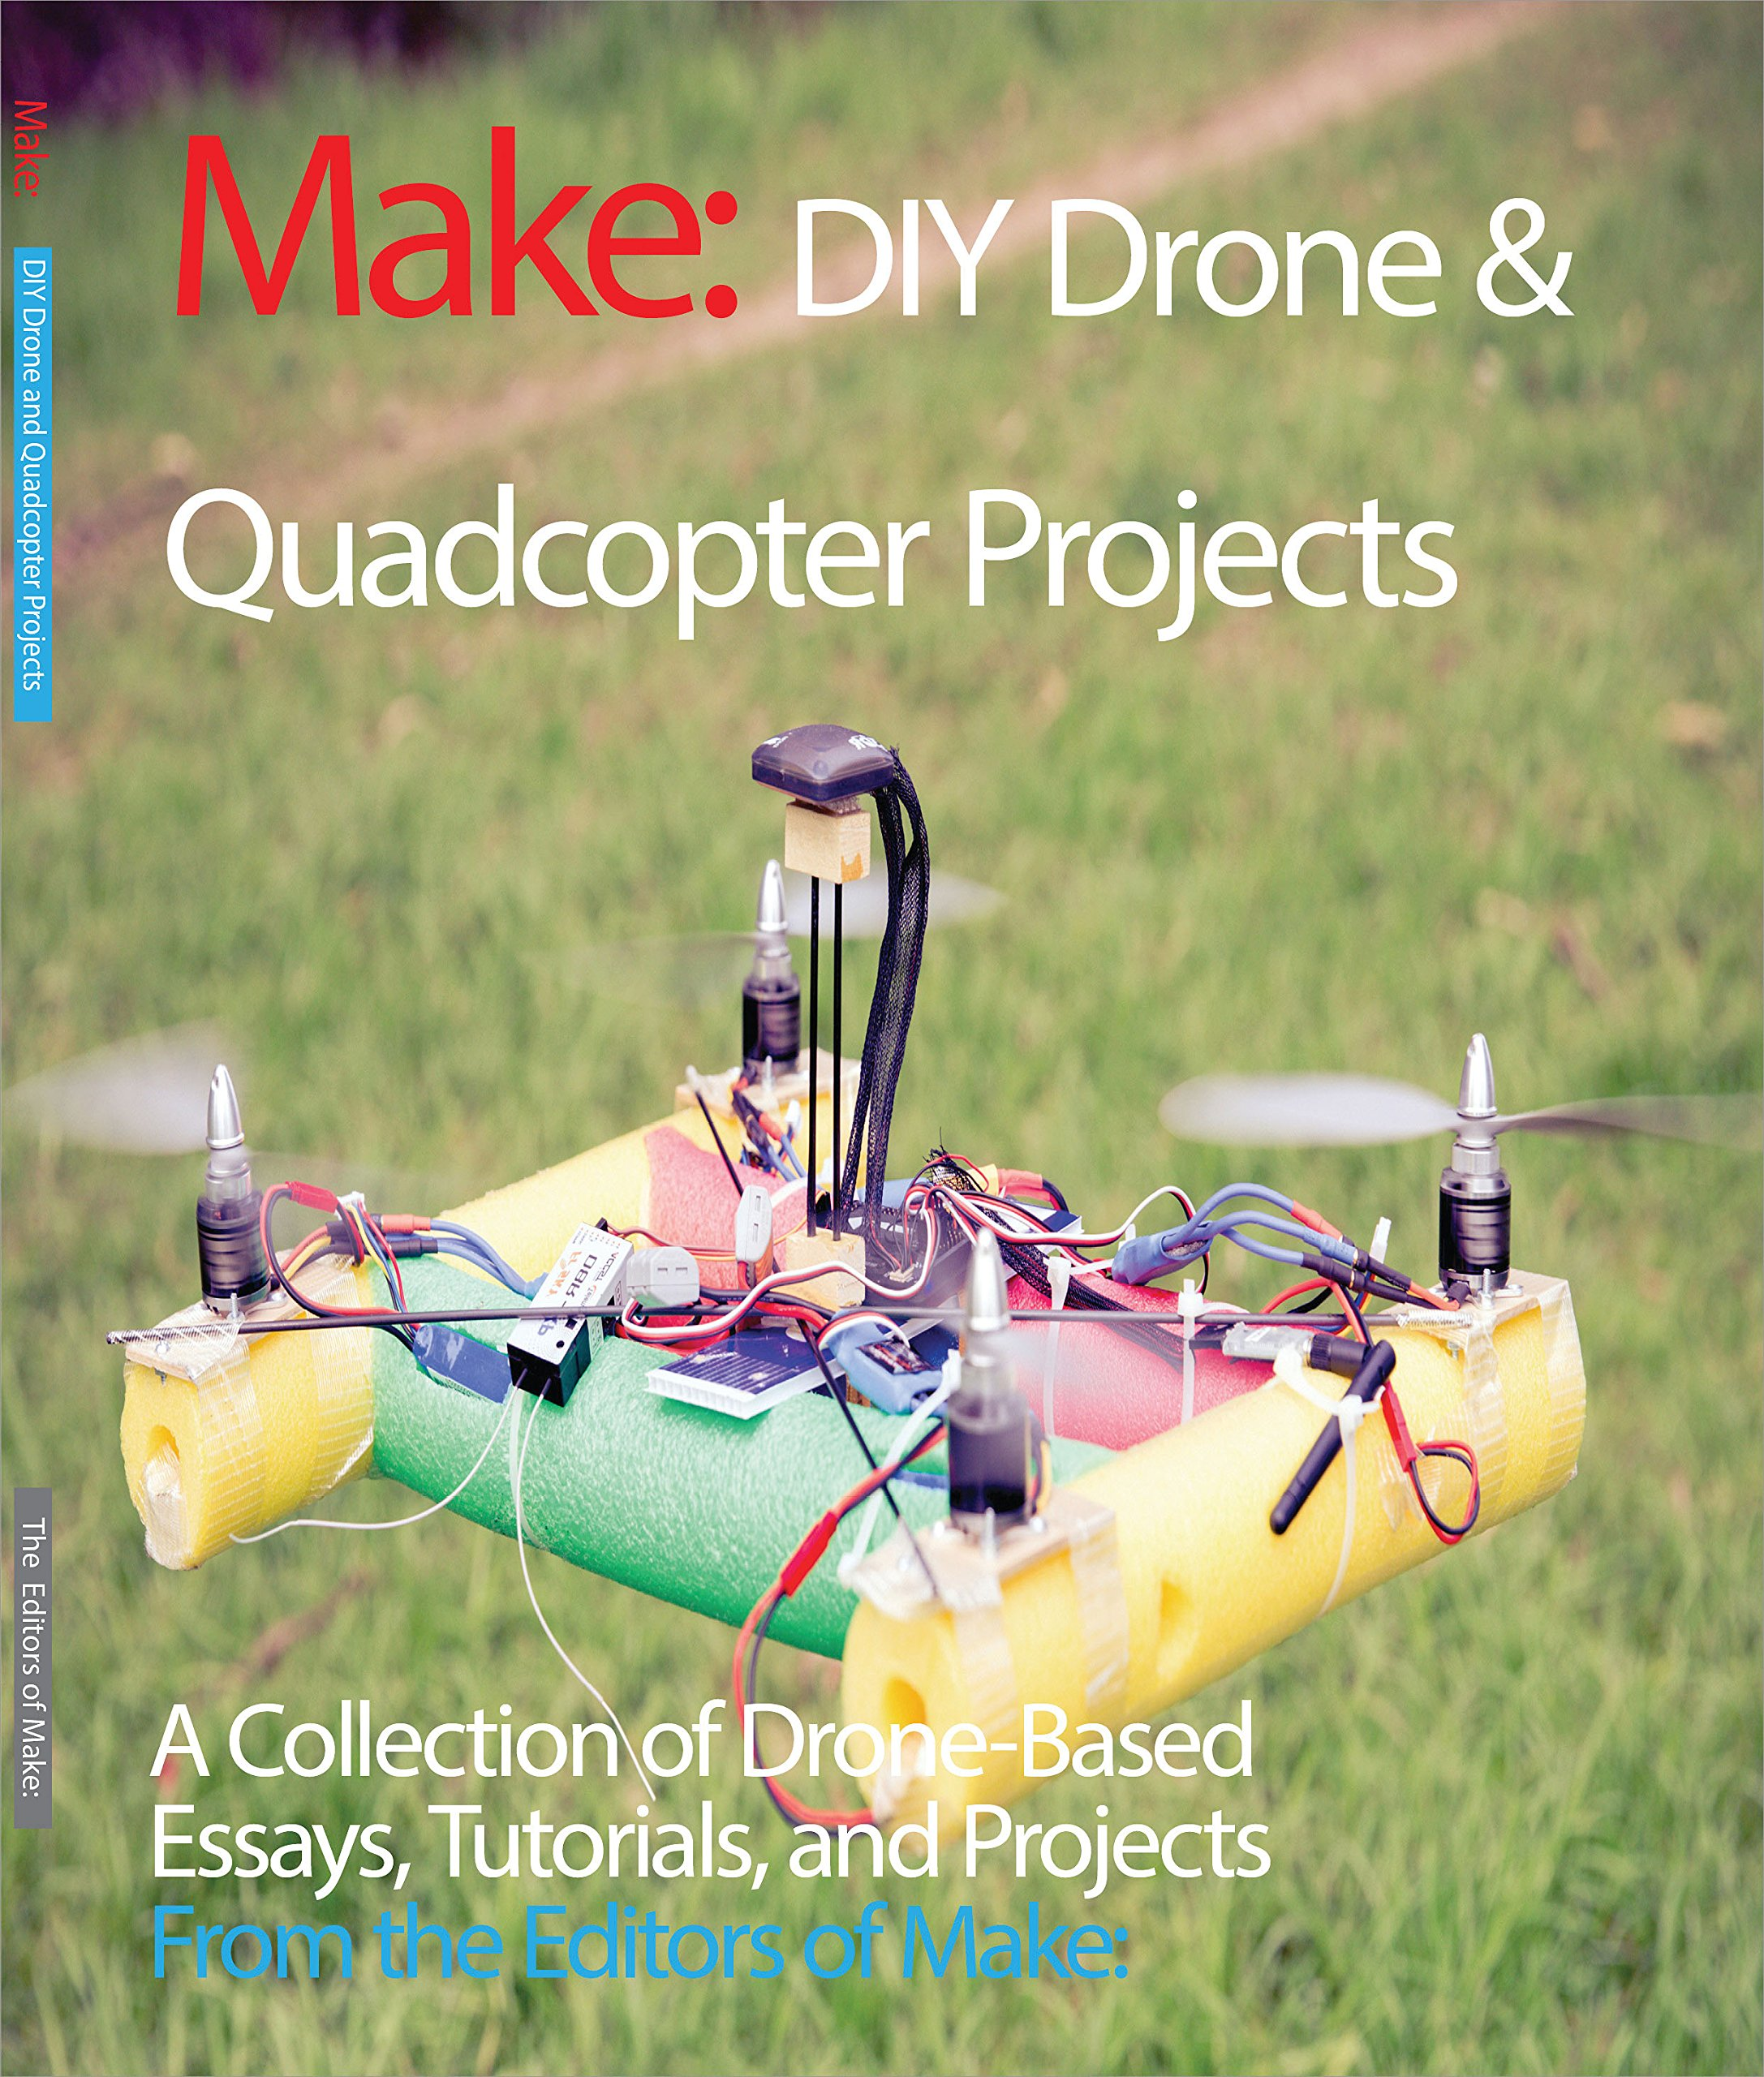 DIY Drone And Quadcopter Projects  Tutorials And Projects From The Pages Of Make